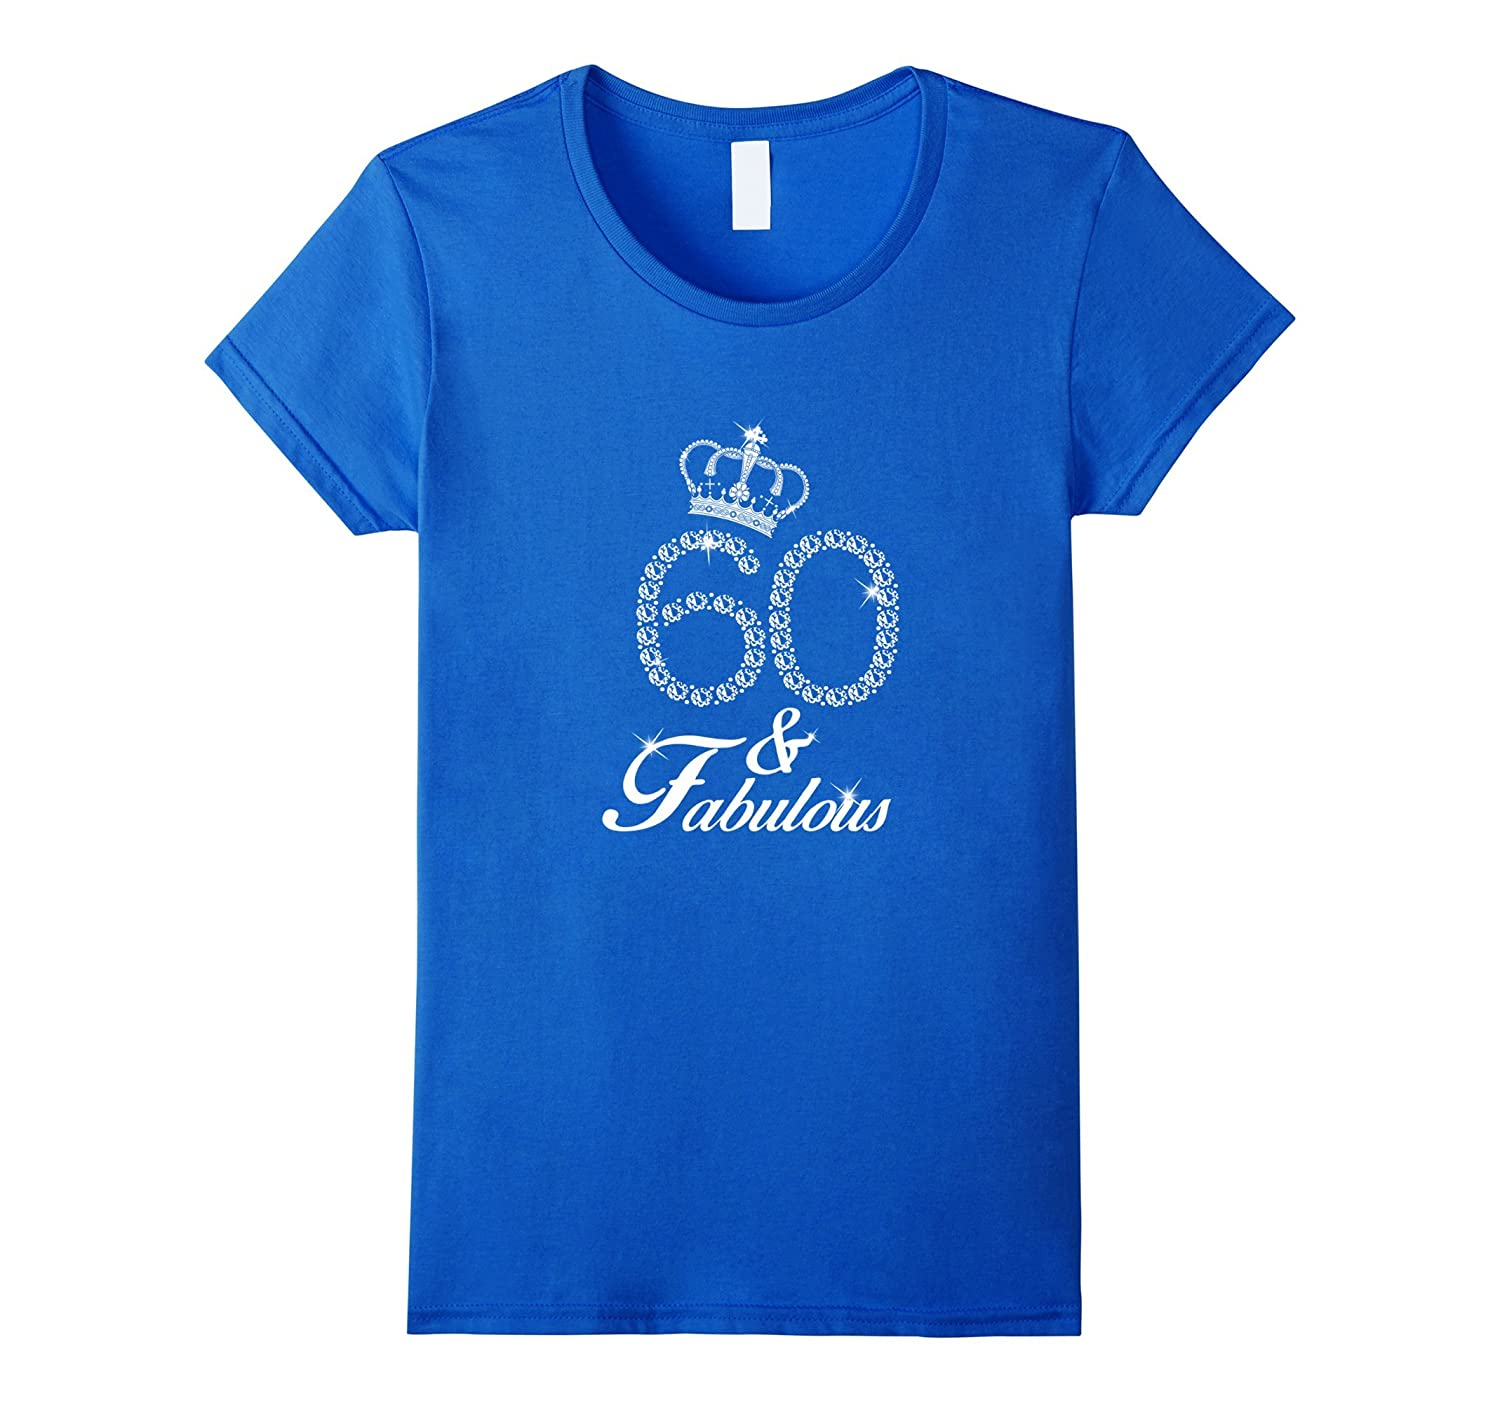 Womens 60th Birthday Gift Diamond 1958 T-shirt for Women-ah my shirt one gift